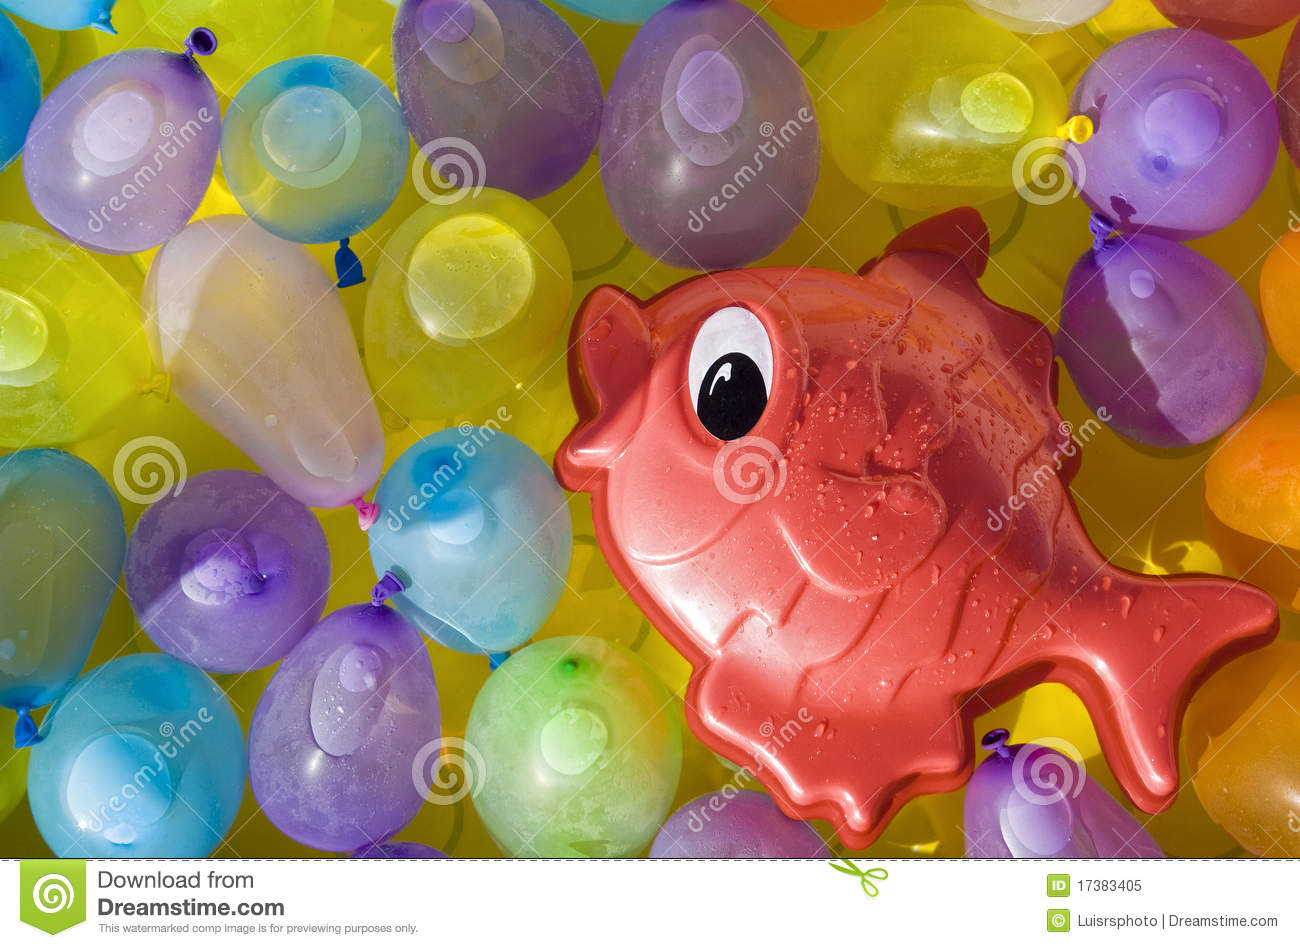 Red Toy Fish Between Colored Ballons Stock Image - Image of humid ...